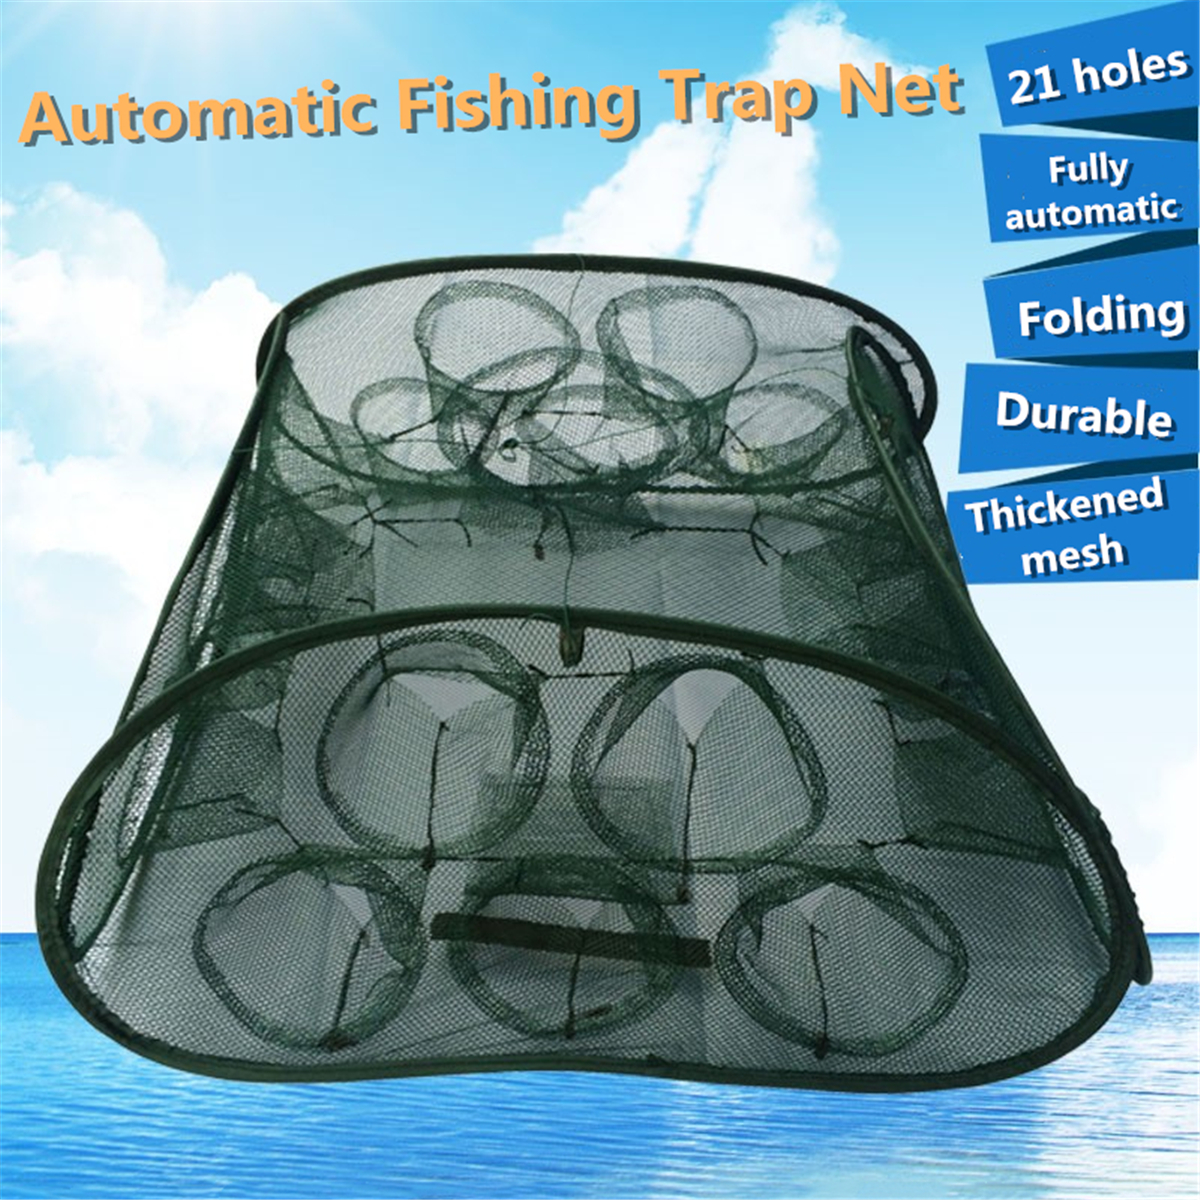 Folding Portable Automatic Fishing Net Minnow Shrimp Crab Baits Cast Mesh Trap